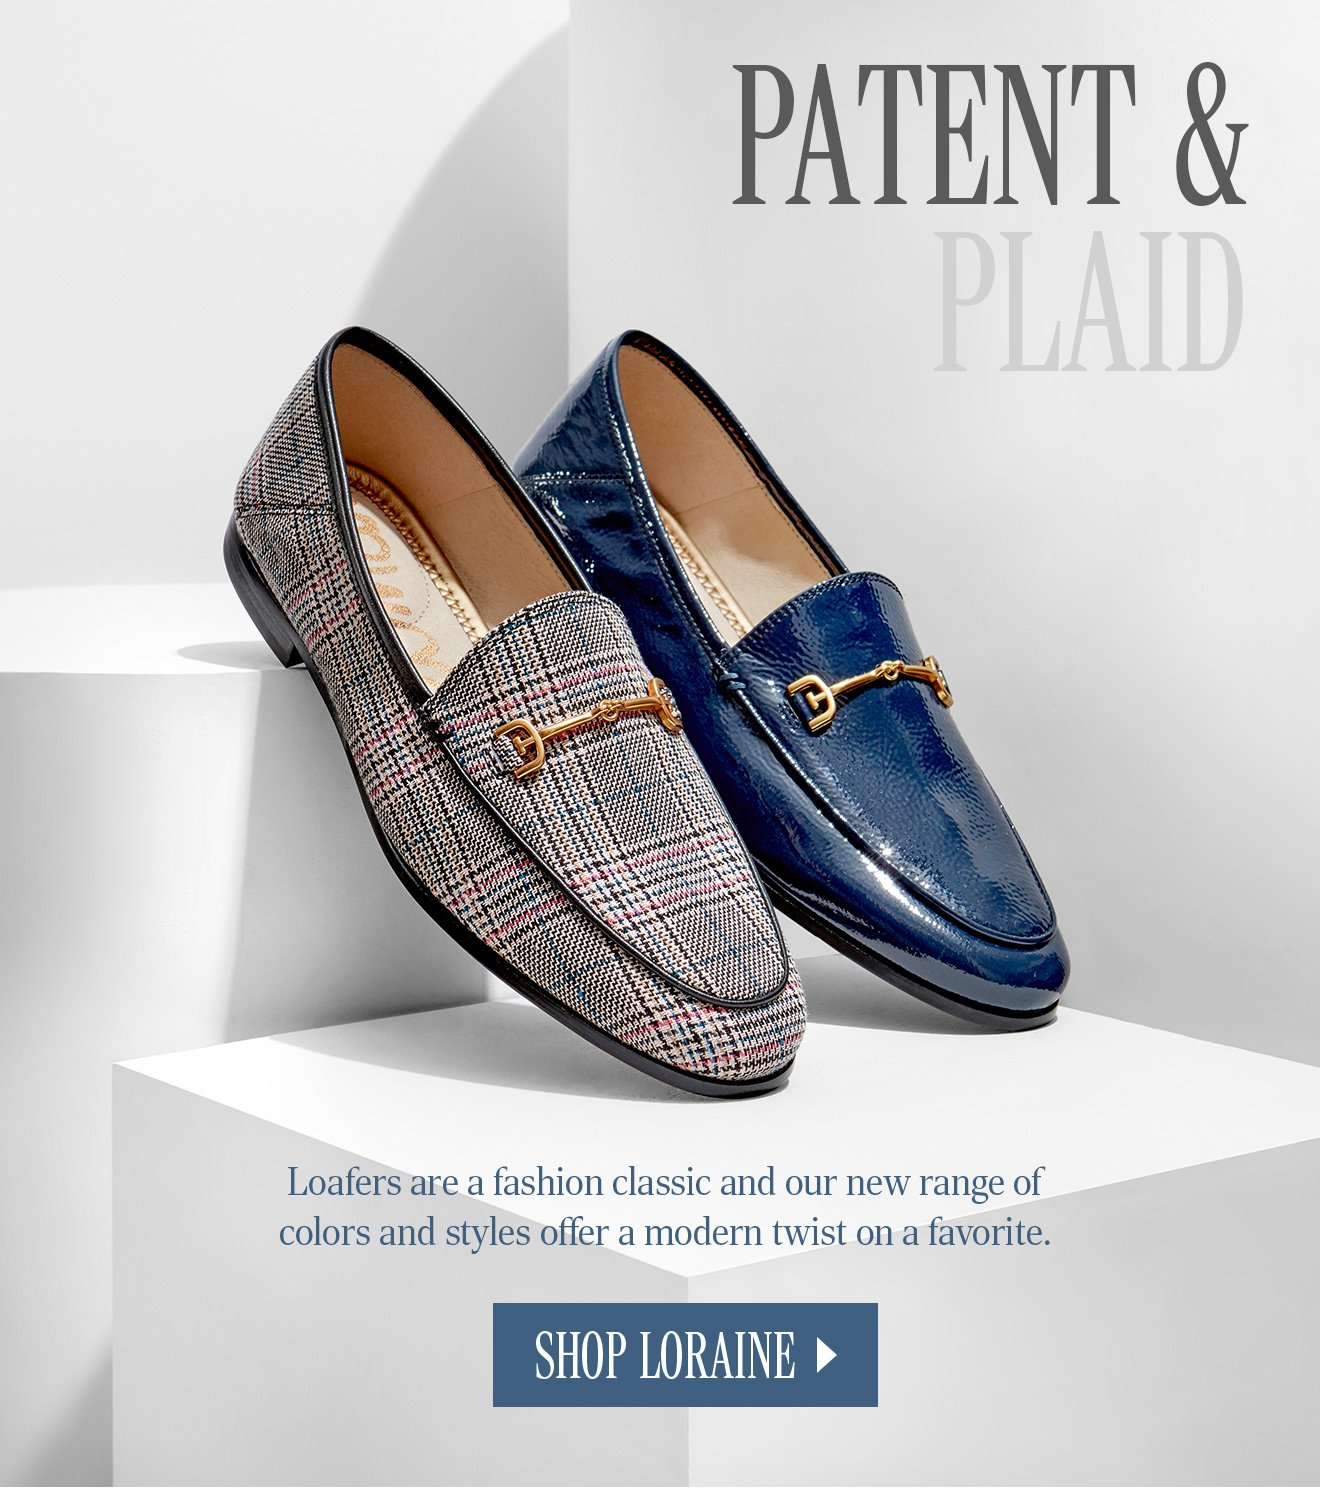 PATENT & PLAID. Loafers are a fashion classic and our new range of colors and styles offer a modern twist on a favorite. SHOP LORAINE.